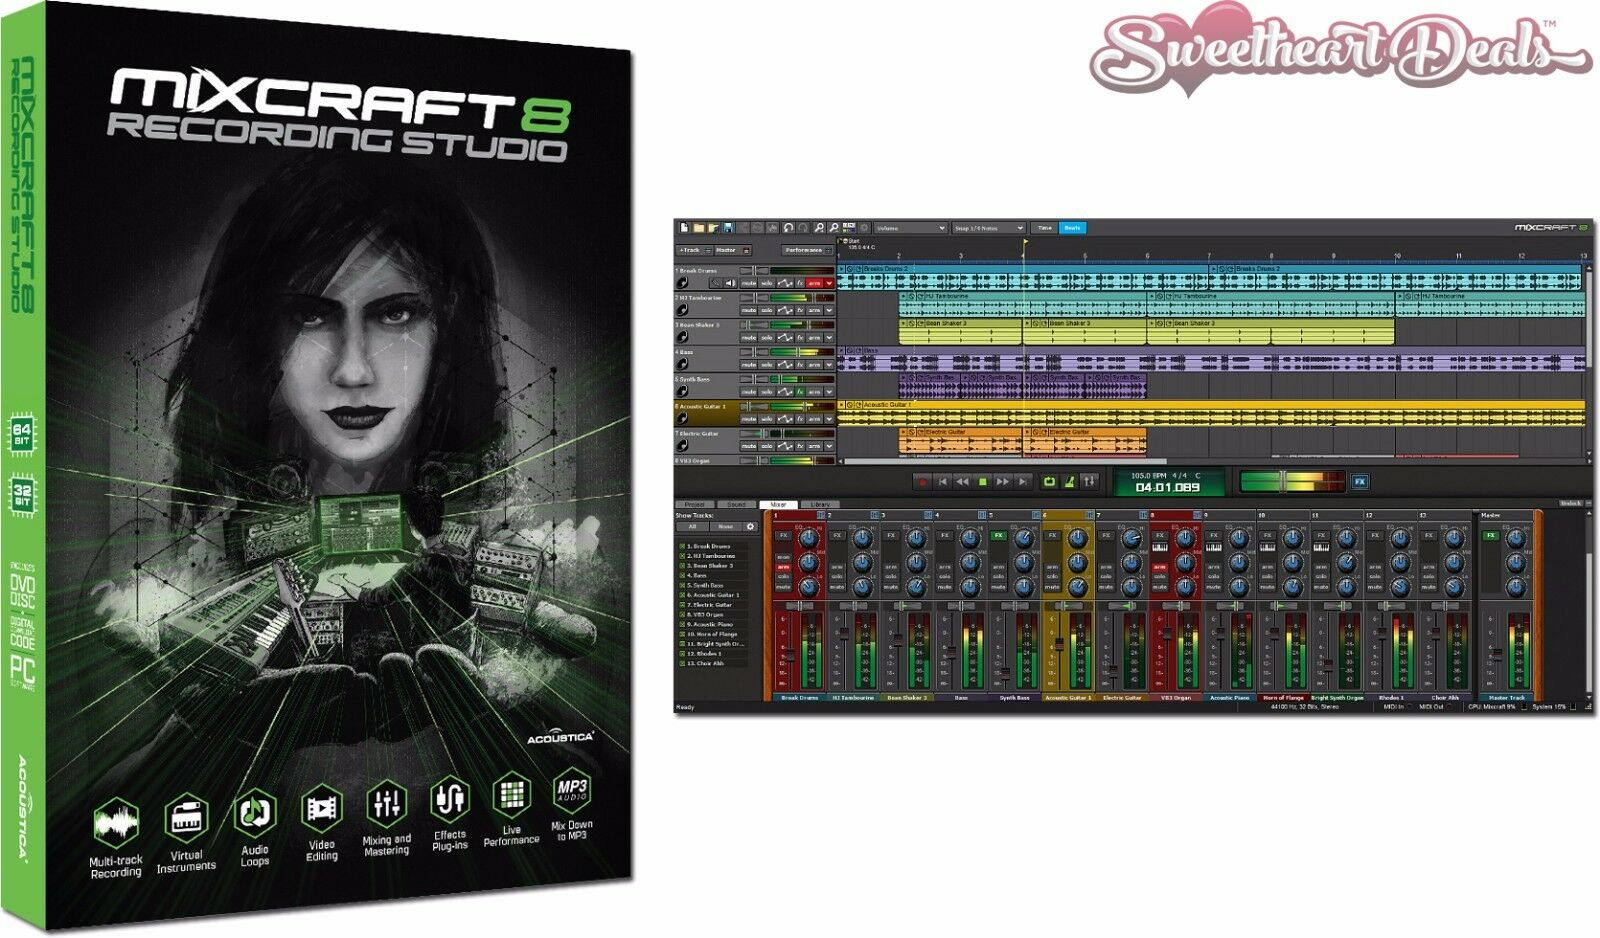 Details about Acoustica Mixcraft 8 Recording Studio Audio Production Music  Software - Download